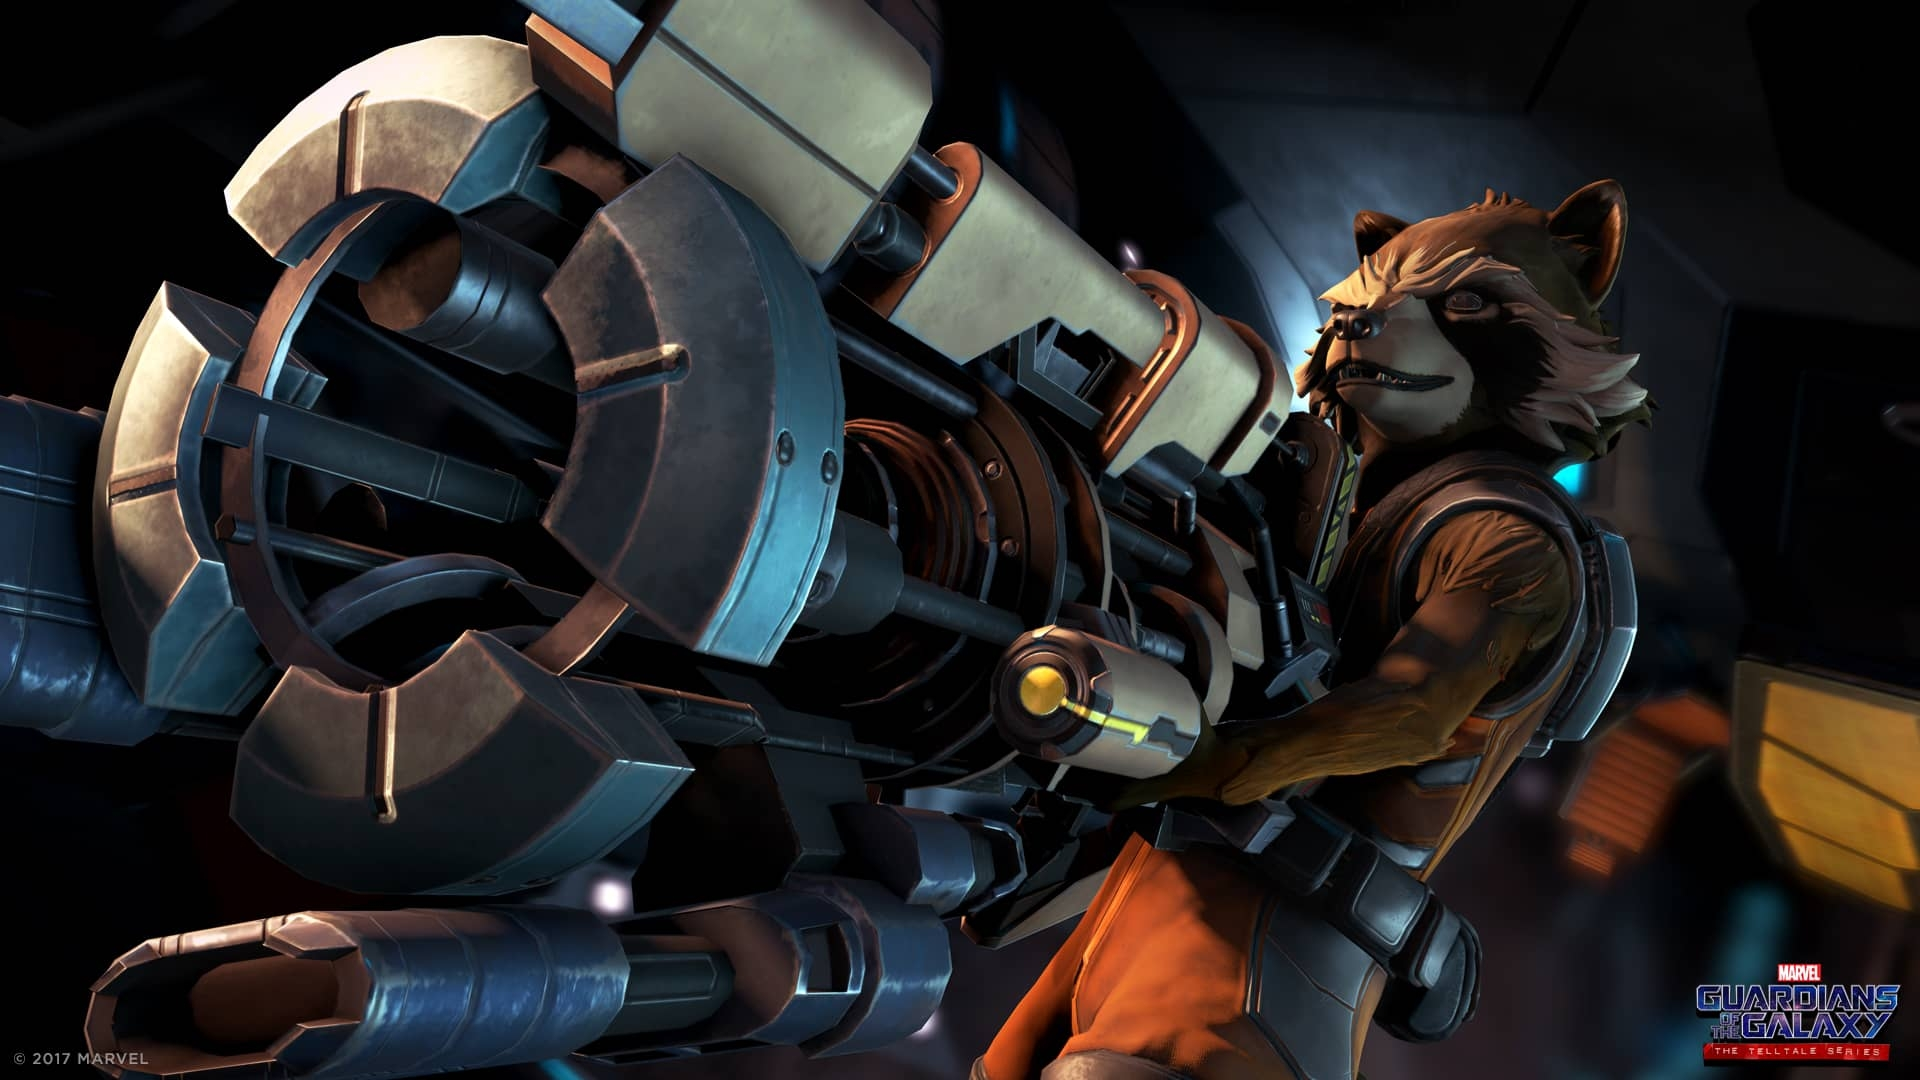 Marvel's Guardians of the Galaxy: The Telltale Series Episode I